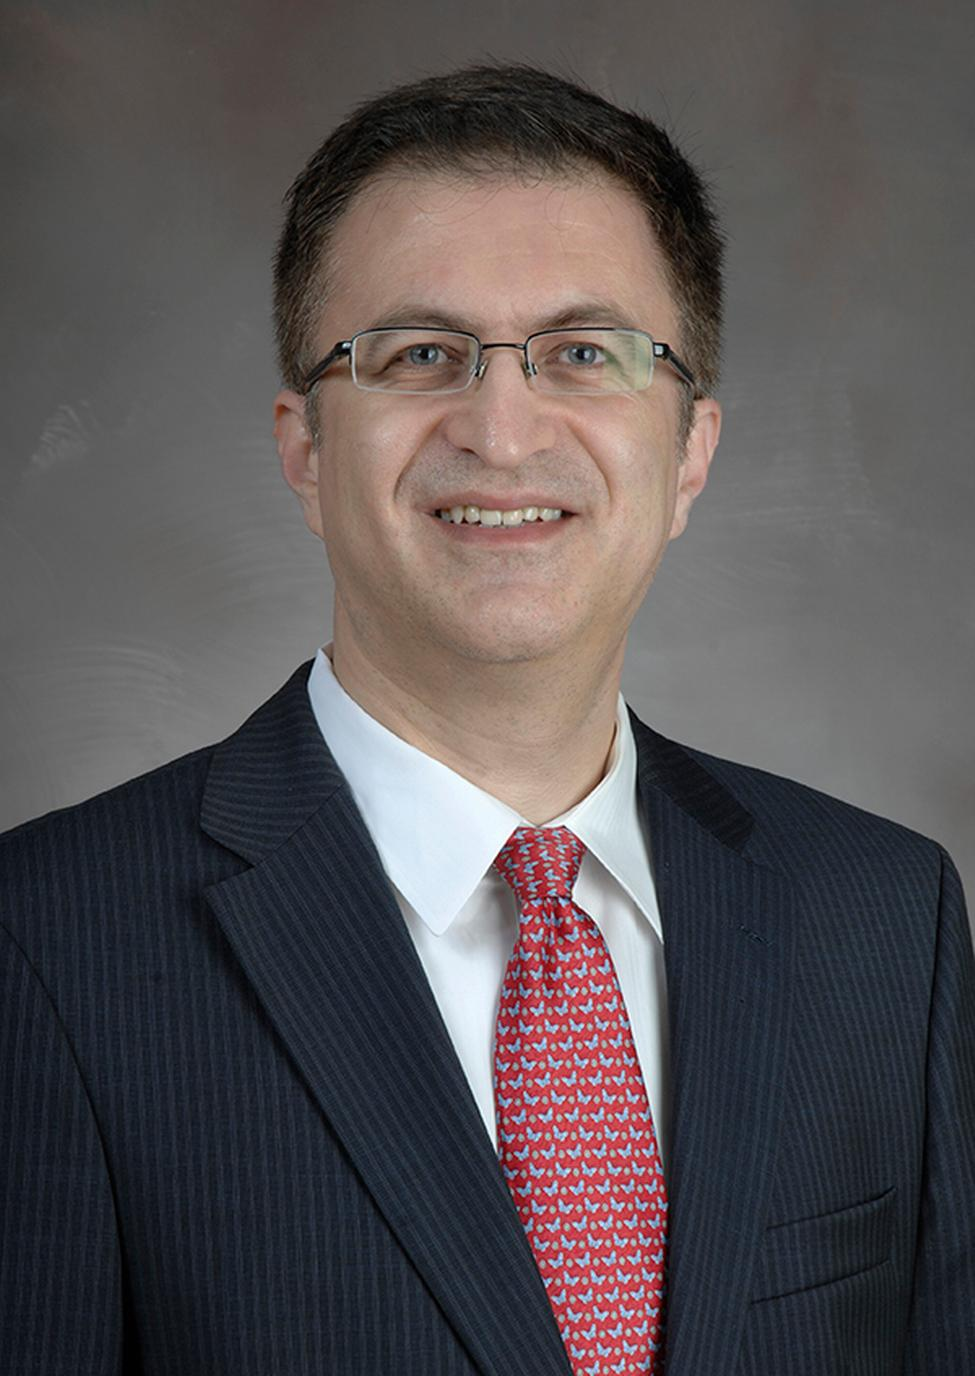 Mohammad Madjid, MD, MS. Photo by UTHealth.